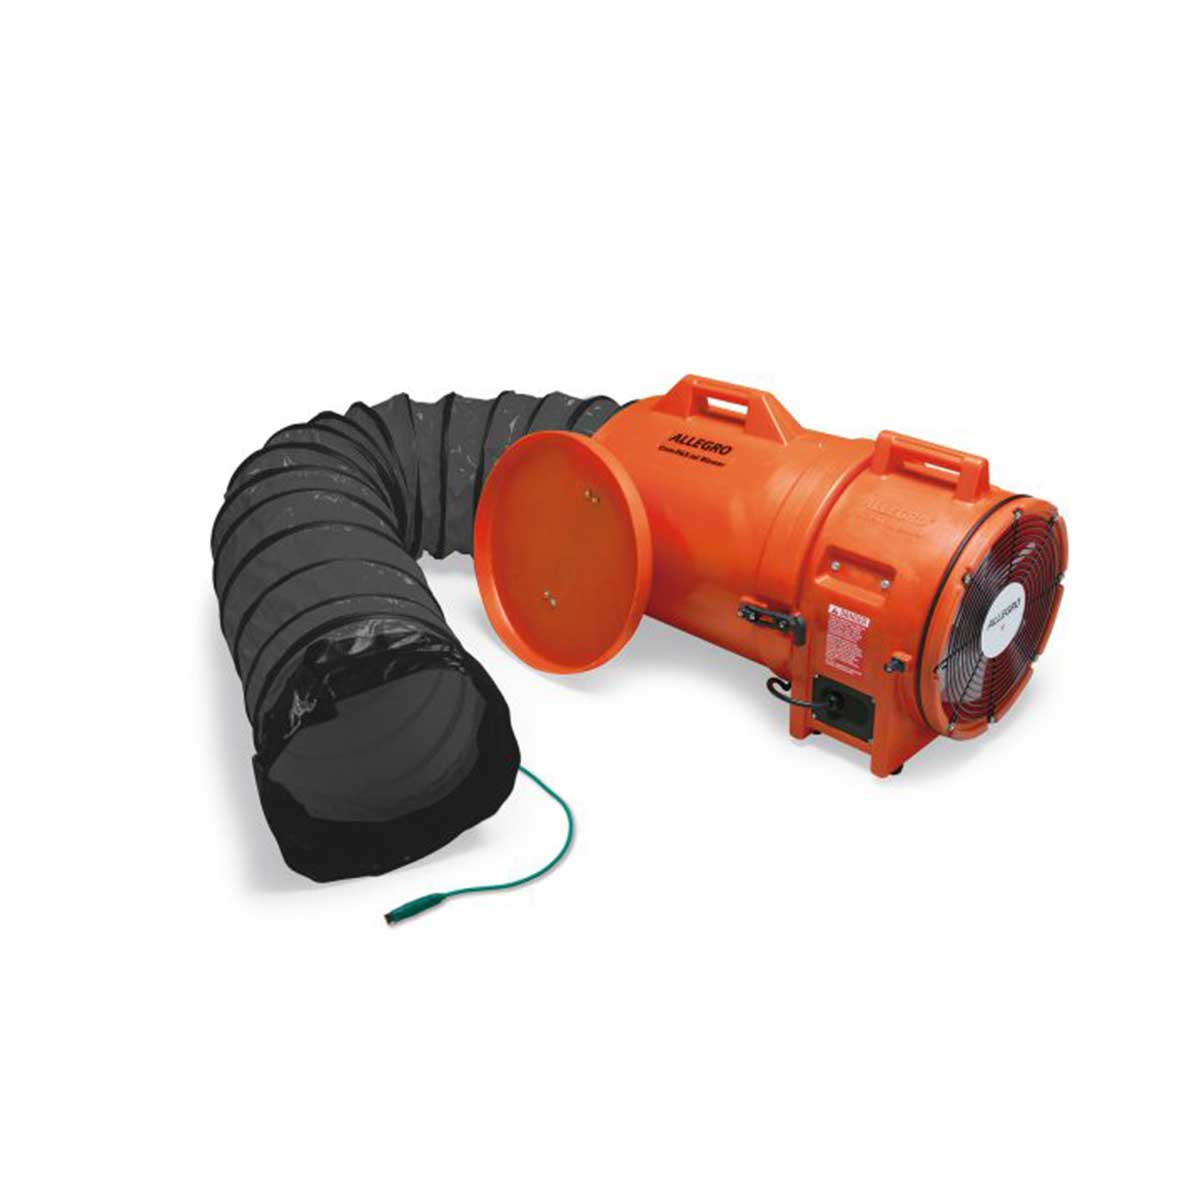 12″ Axial Explosion-Proof (EX) Plastic Blower w/ Canister & 25′ Ducting, 220V/50 Hz. Part: ALL-9548-25E. Pkg: 1